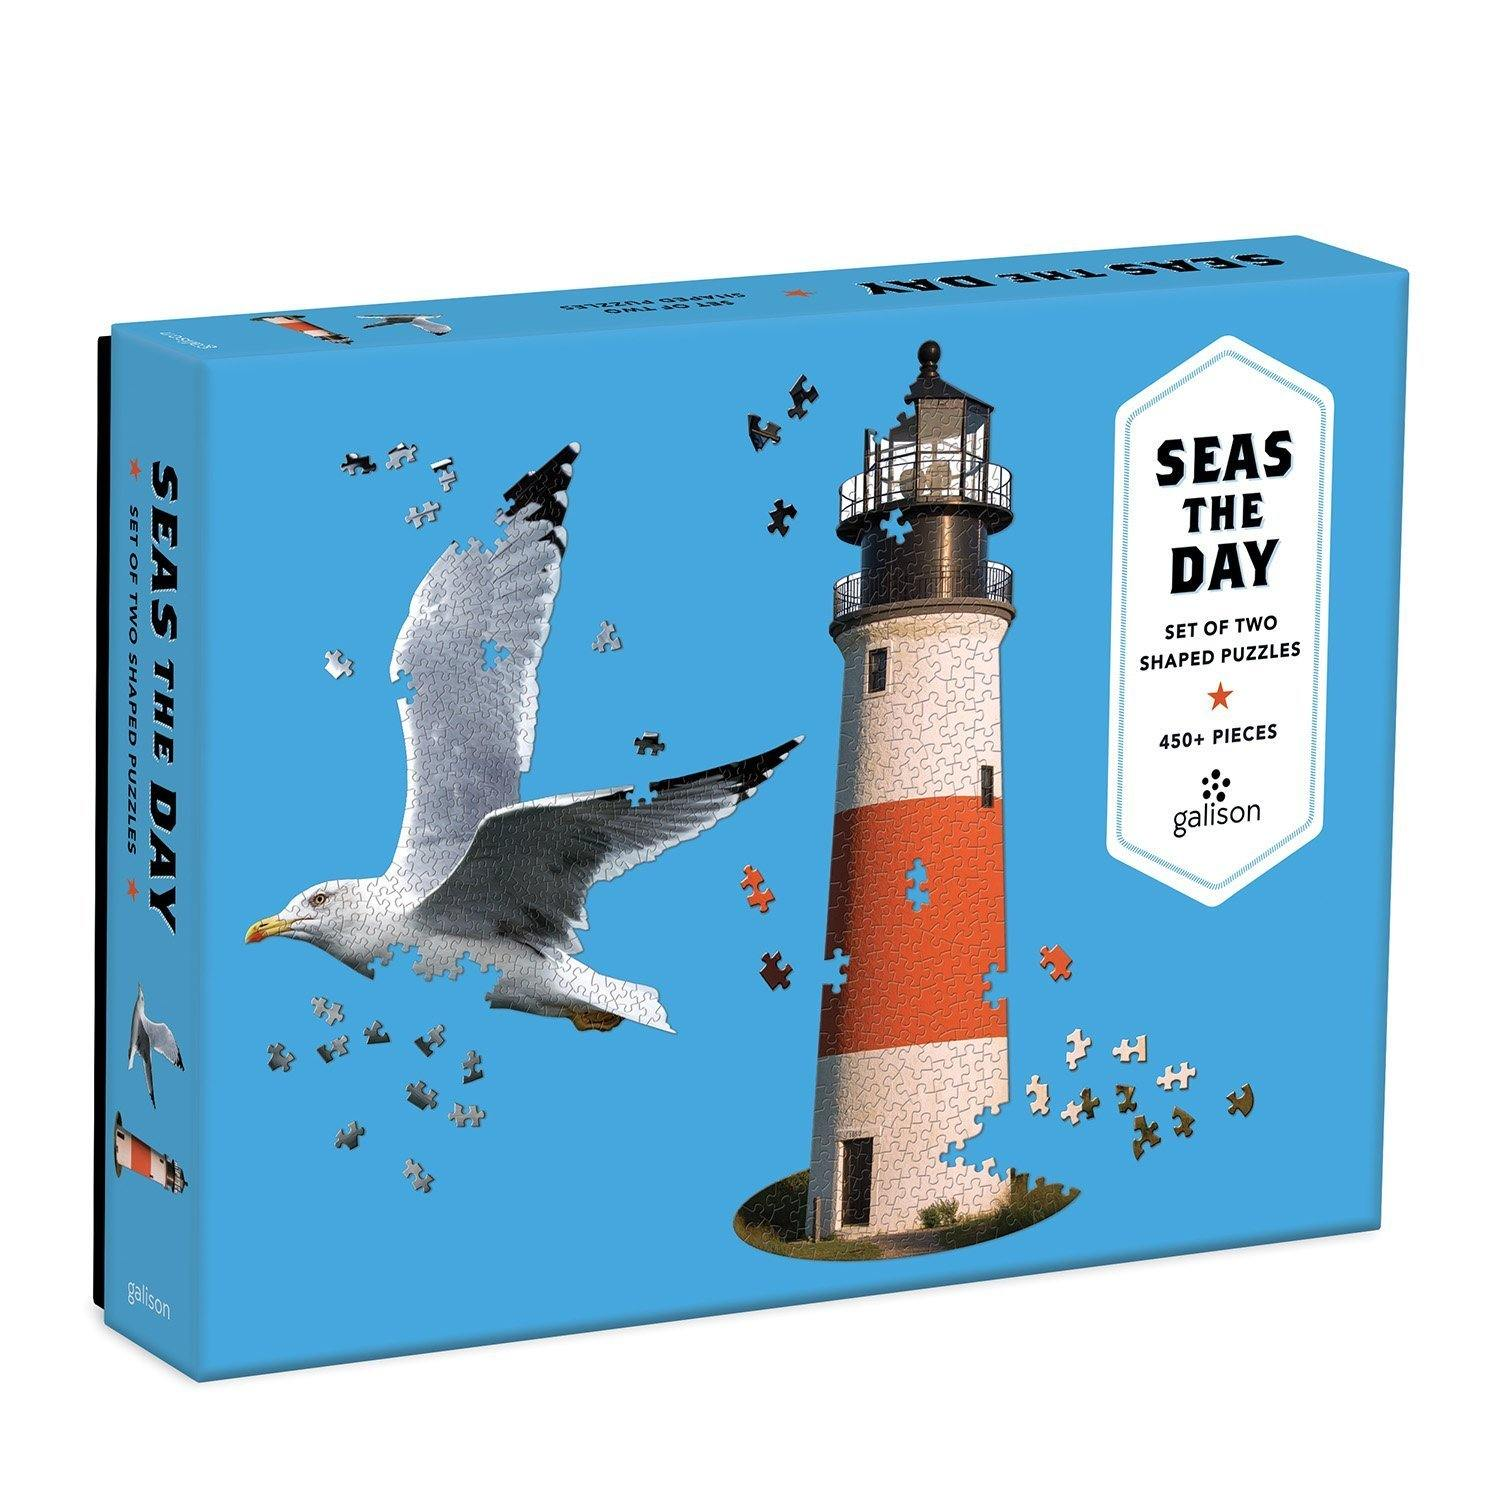 Seas The Day 2 In 1 Jigsaw Puzzle, Toys & Games by Insideout